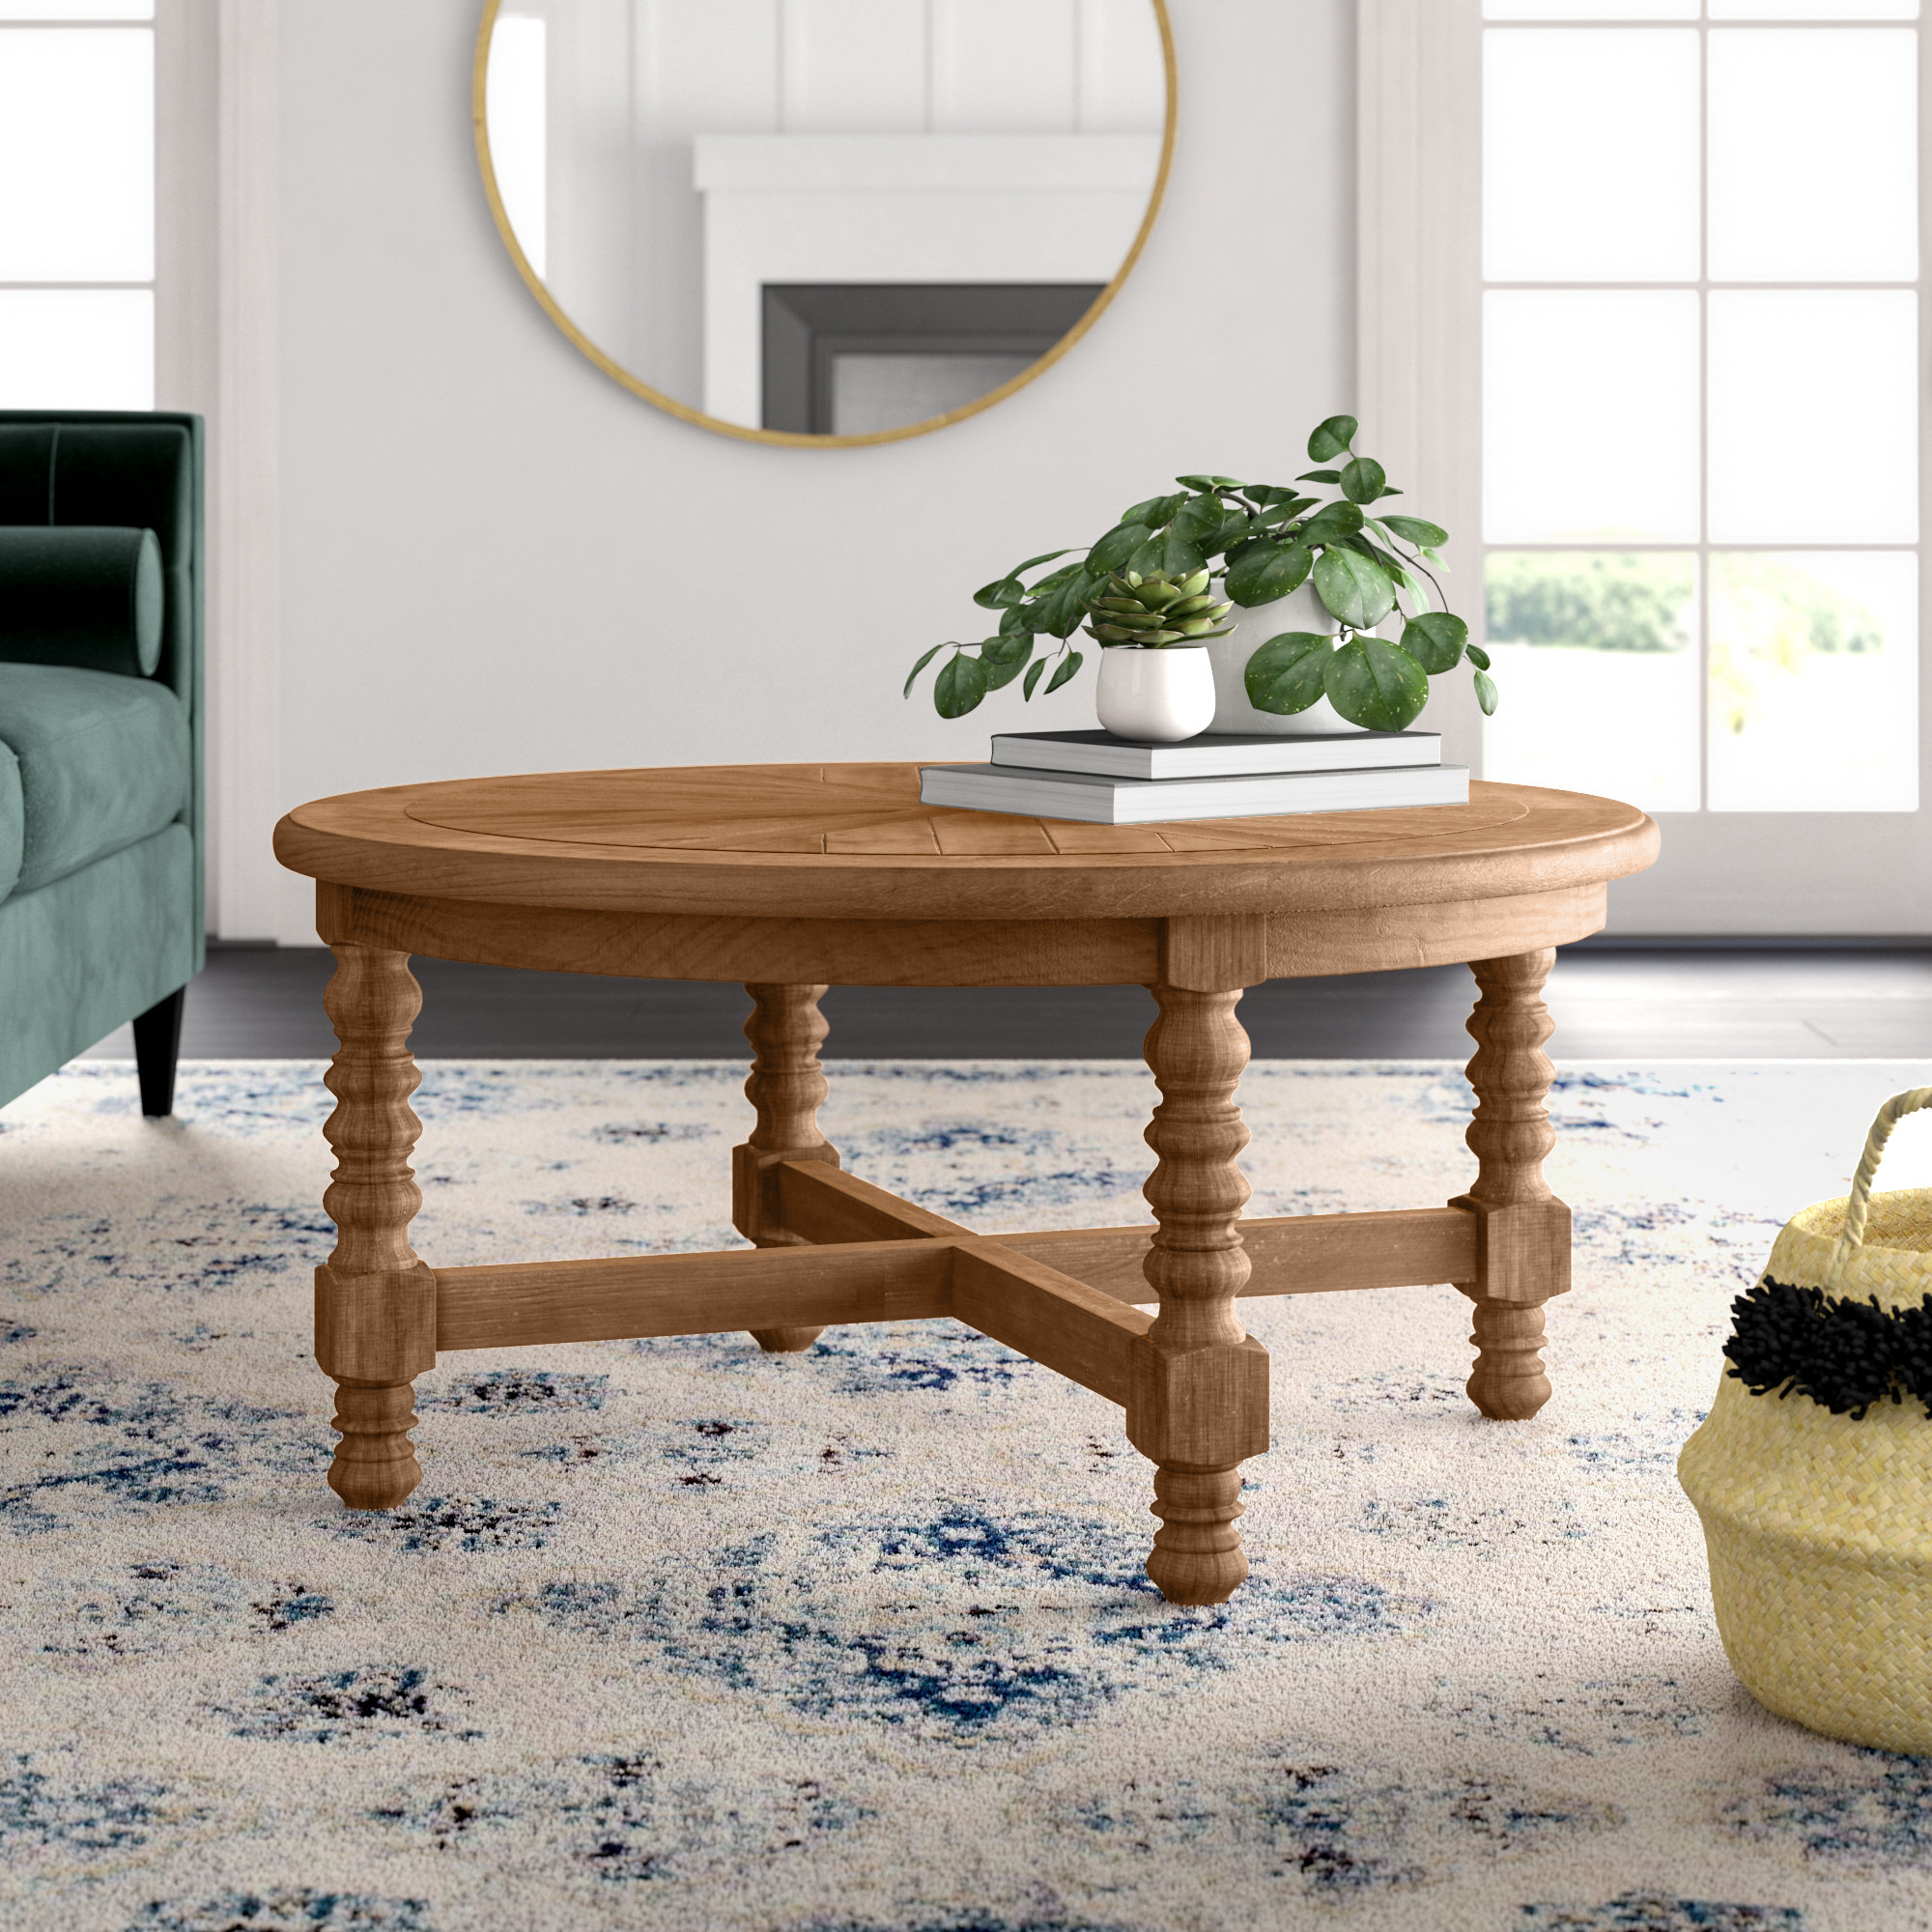 Mistana Haylie Wooden Coffee Table Reviews Wayfair within dimensions 2000 X 2000